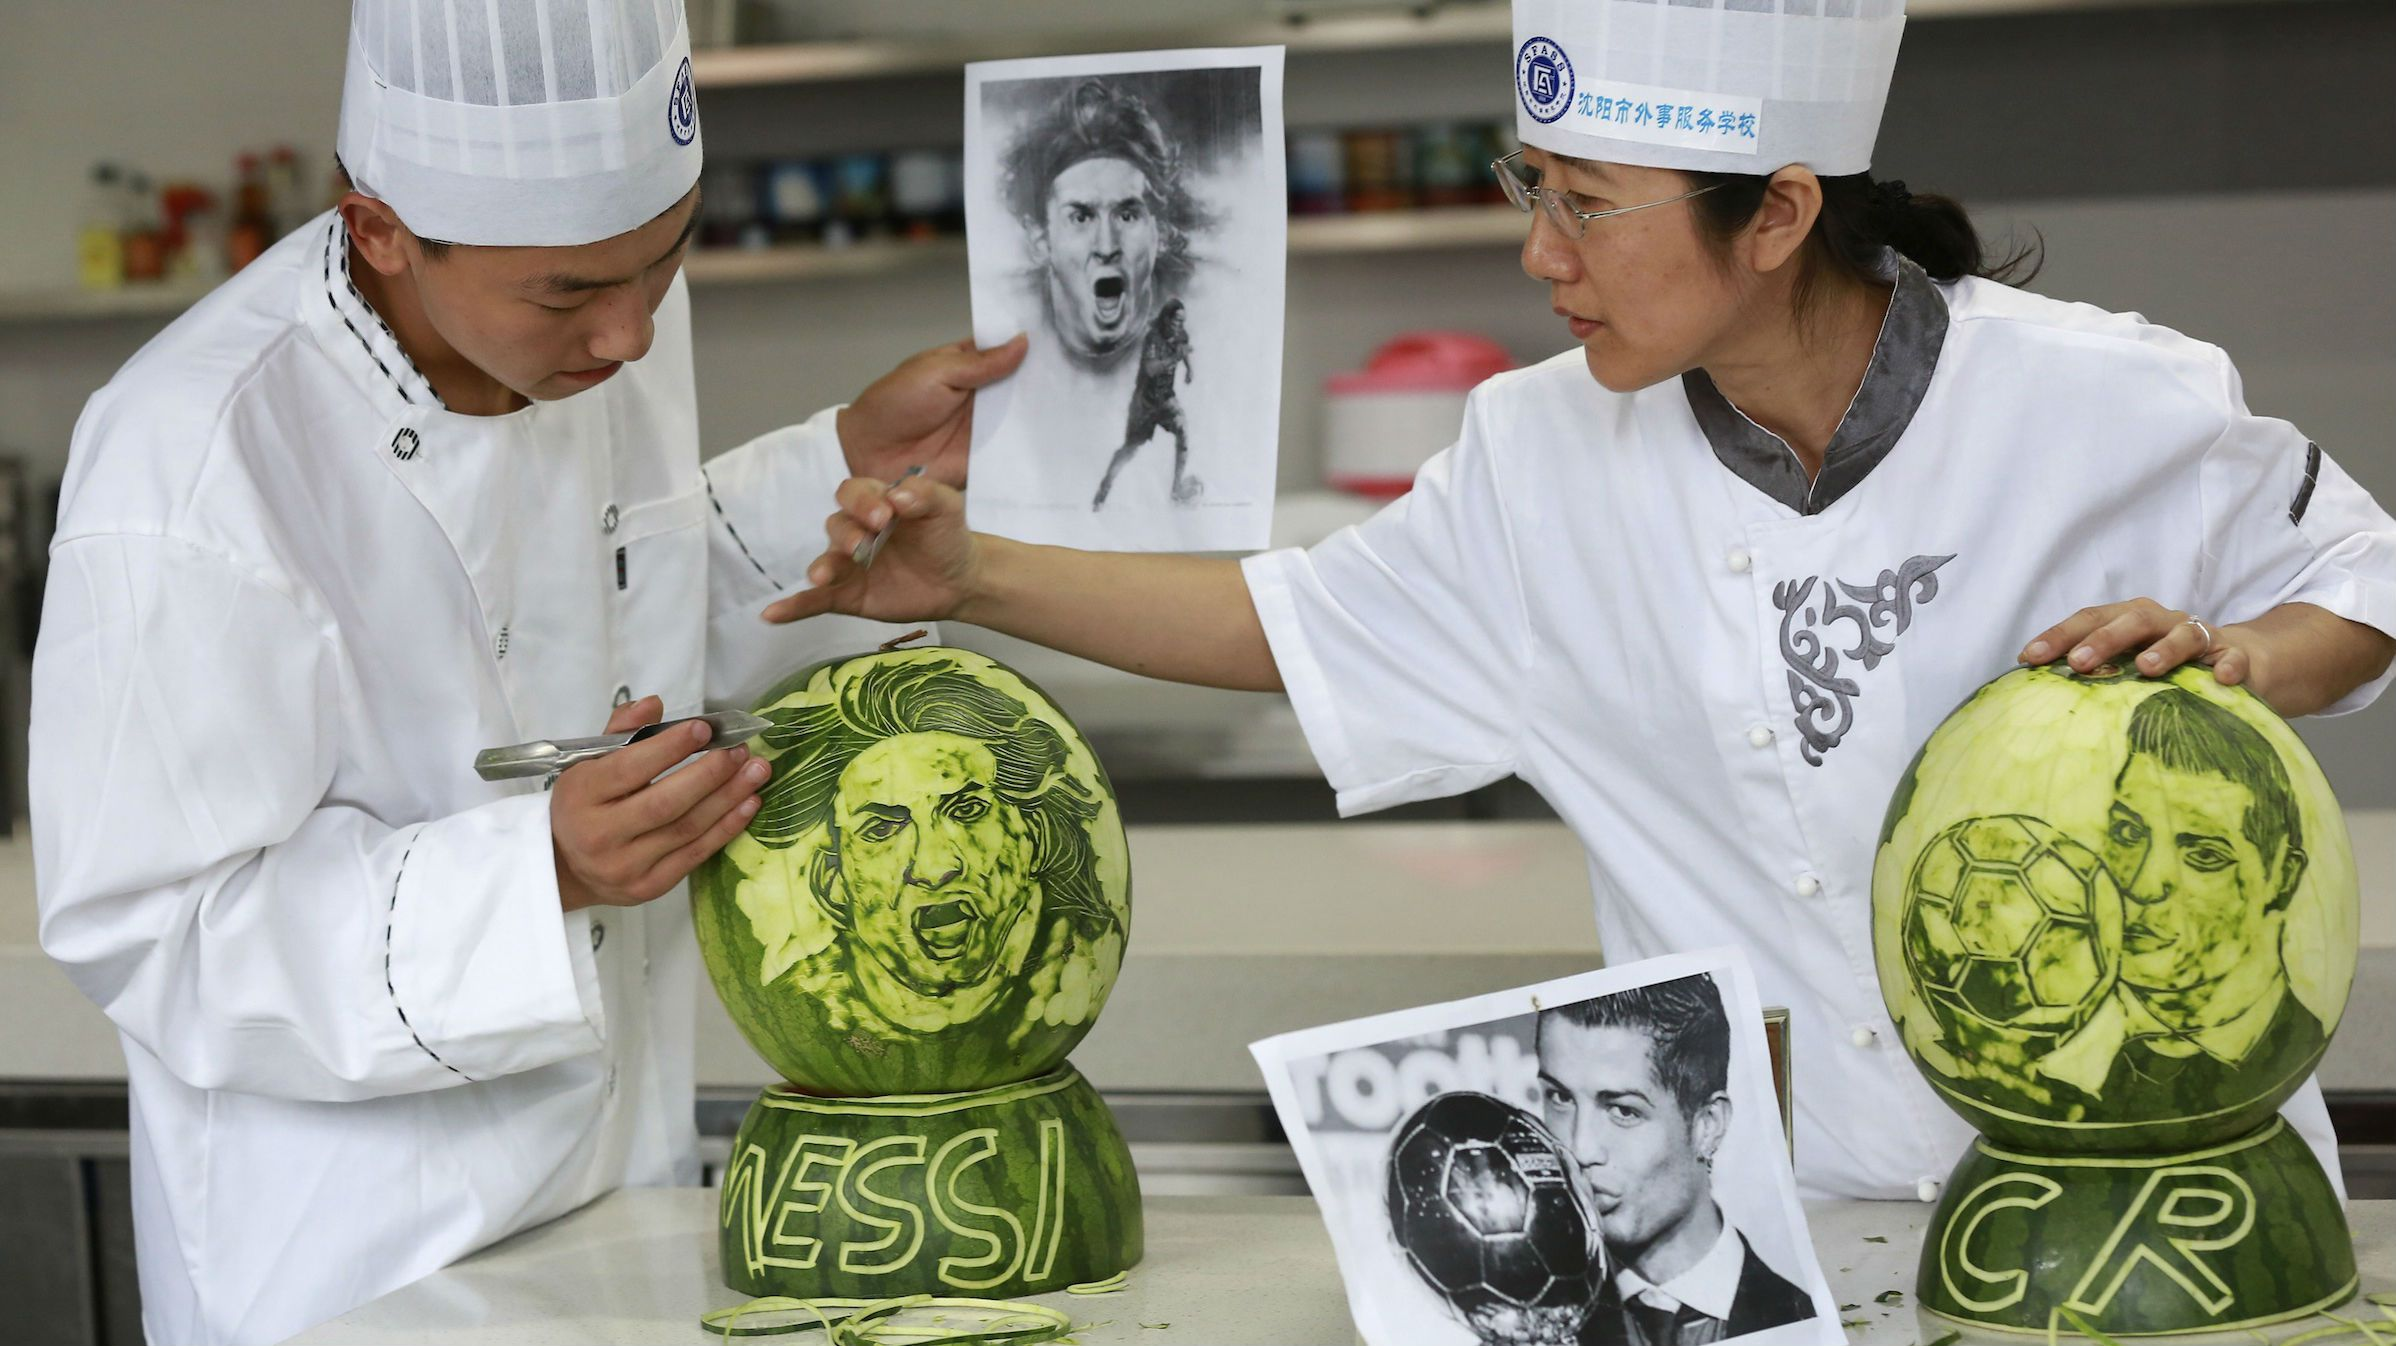 A culinary teacher (R) and a student carve images of Argentine soccer player Lionel Messi and Portugal's Cristiano Ronaldo on watermelons, ahead of the 2014 World Cup in Brazil, in Shenyang, Liaoning province, June 11, 2014. REUTERS/Stringer